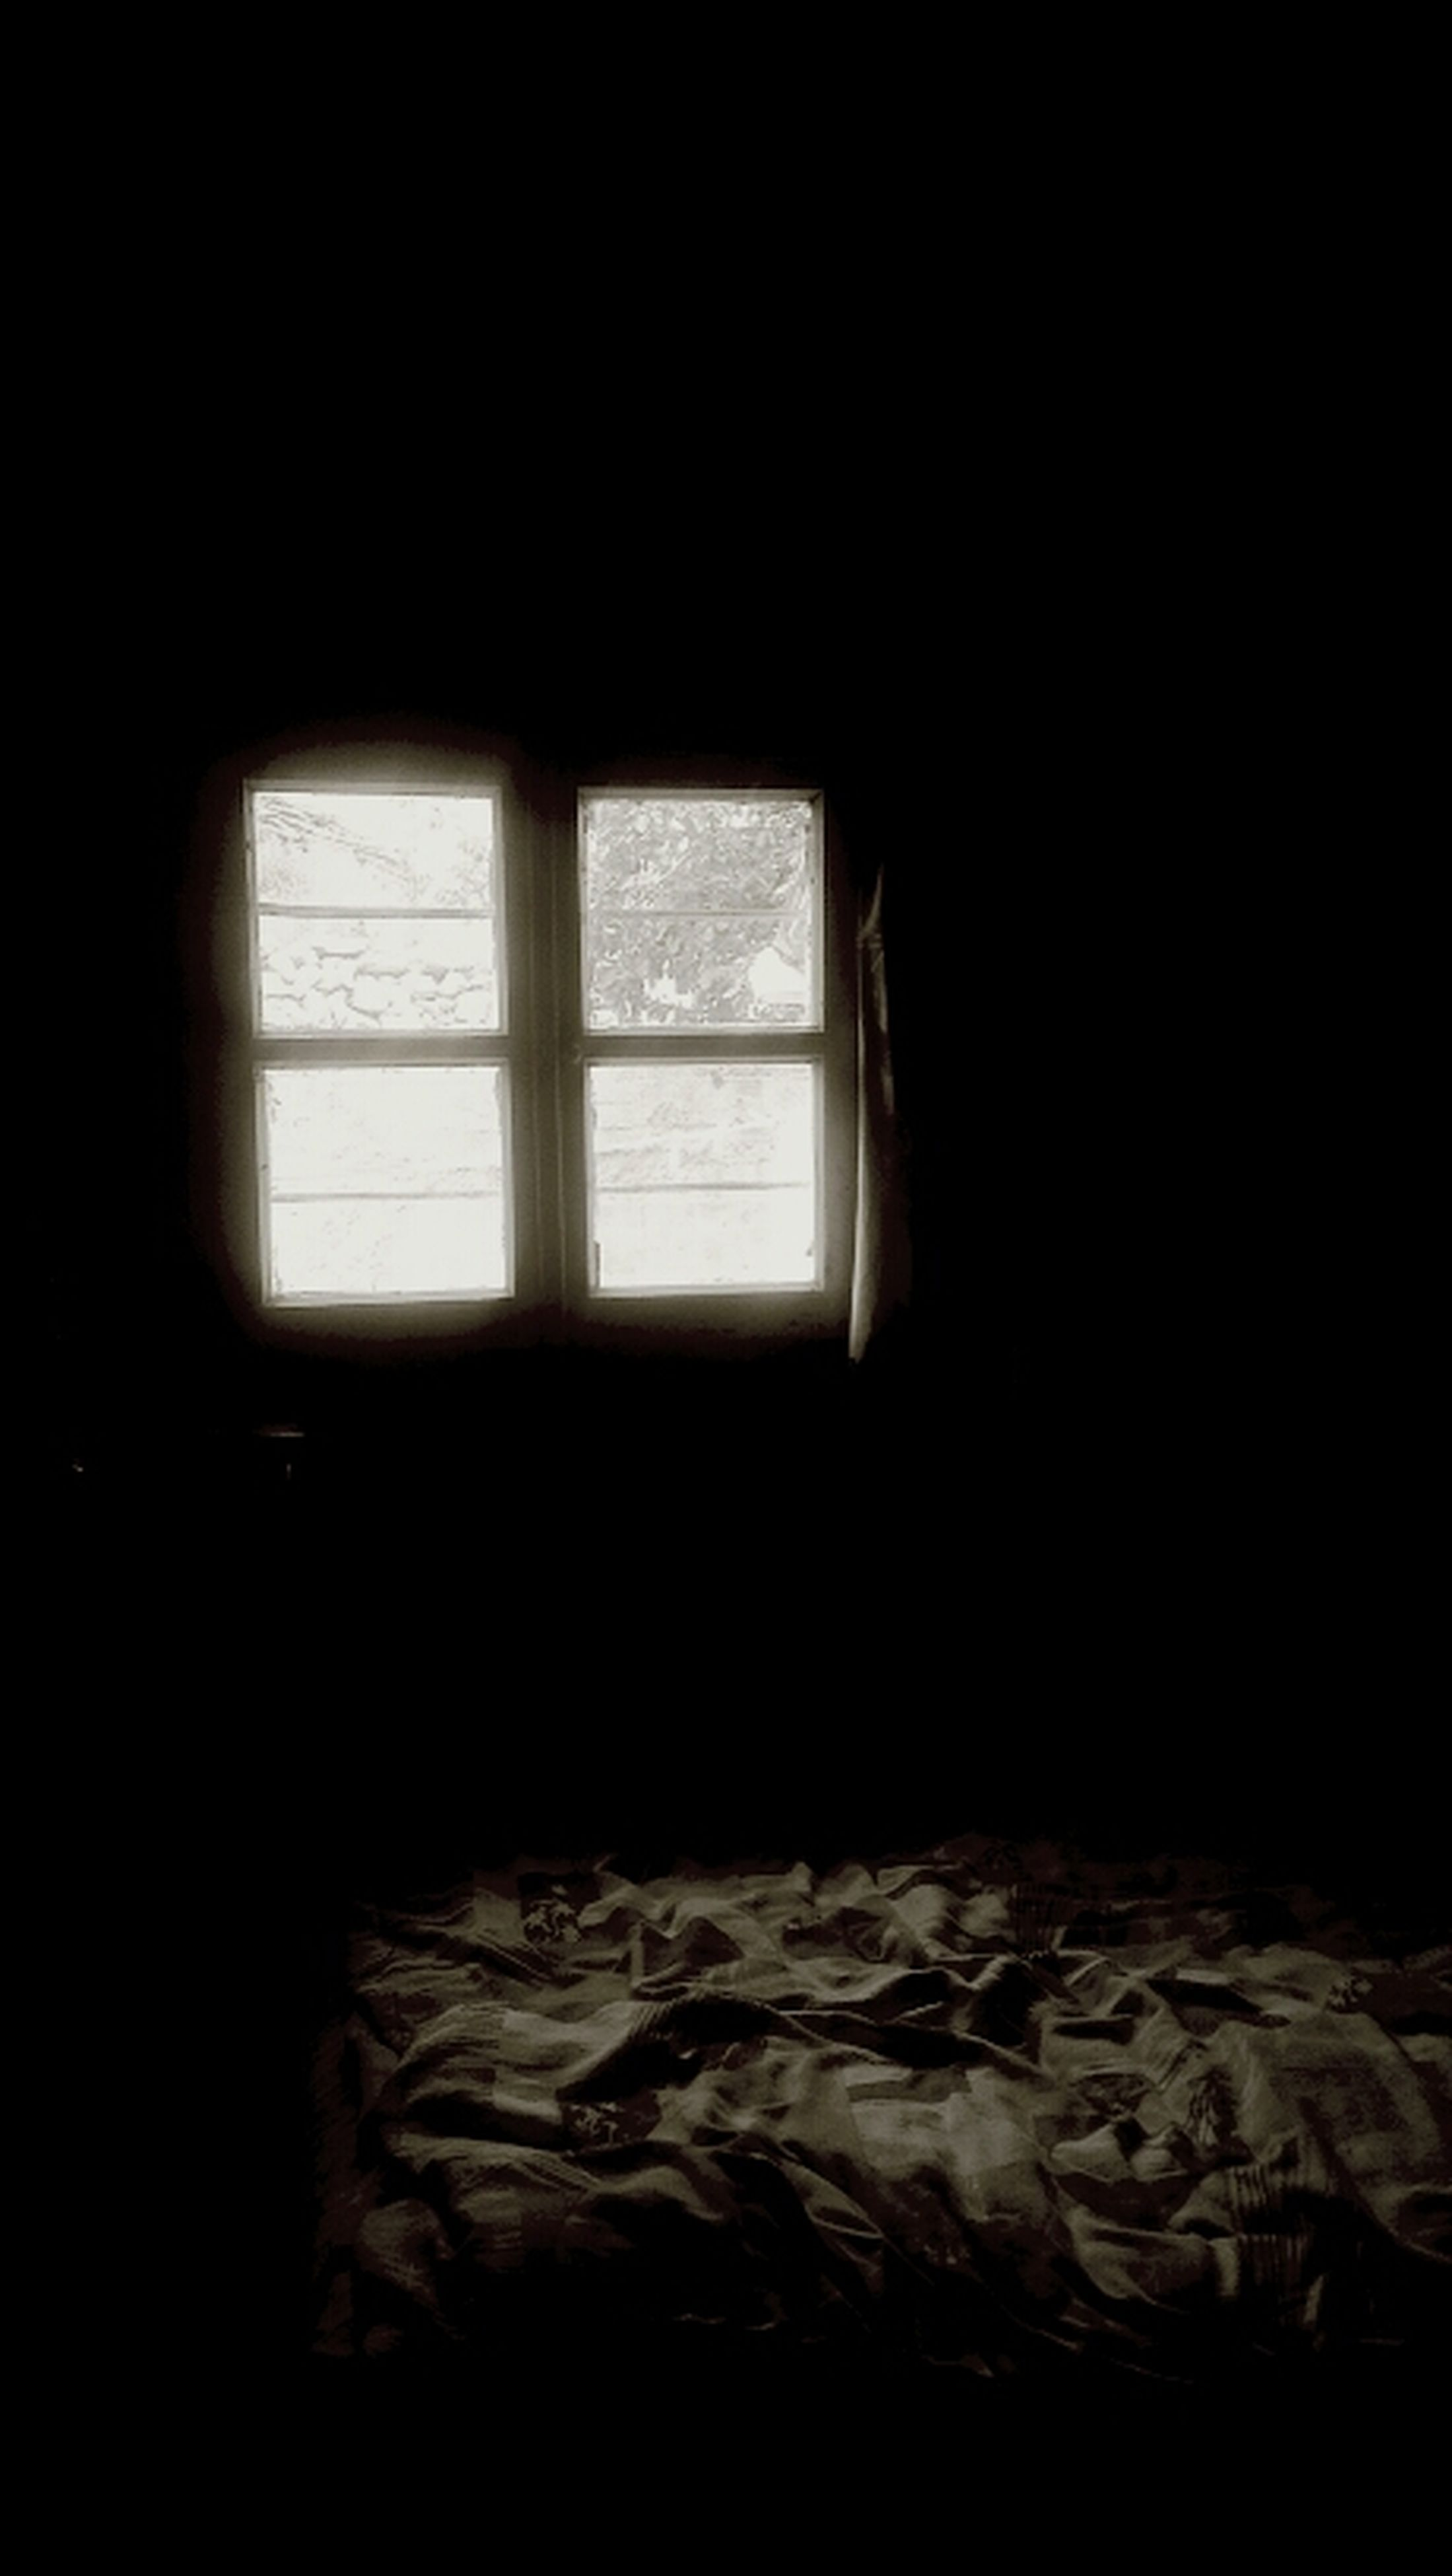 indoors, window, dark, glass - material, transparent, copy space, home interior, looking through window, absence, sunlight, silhouette, no people, curtain, empty, interior, darkroom, day, vehicle interior, shadow, open